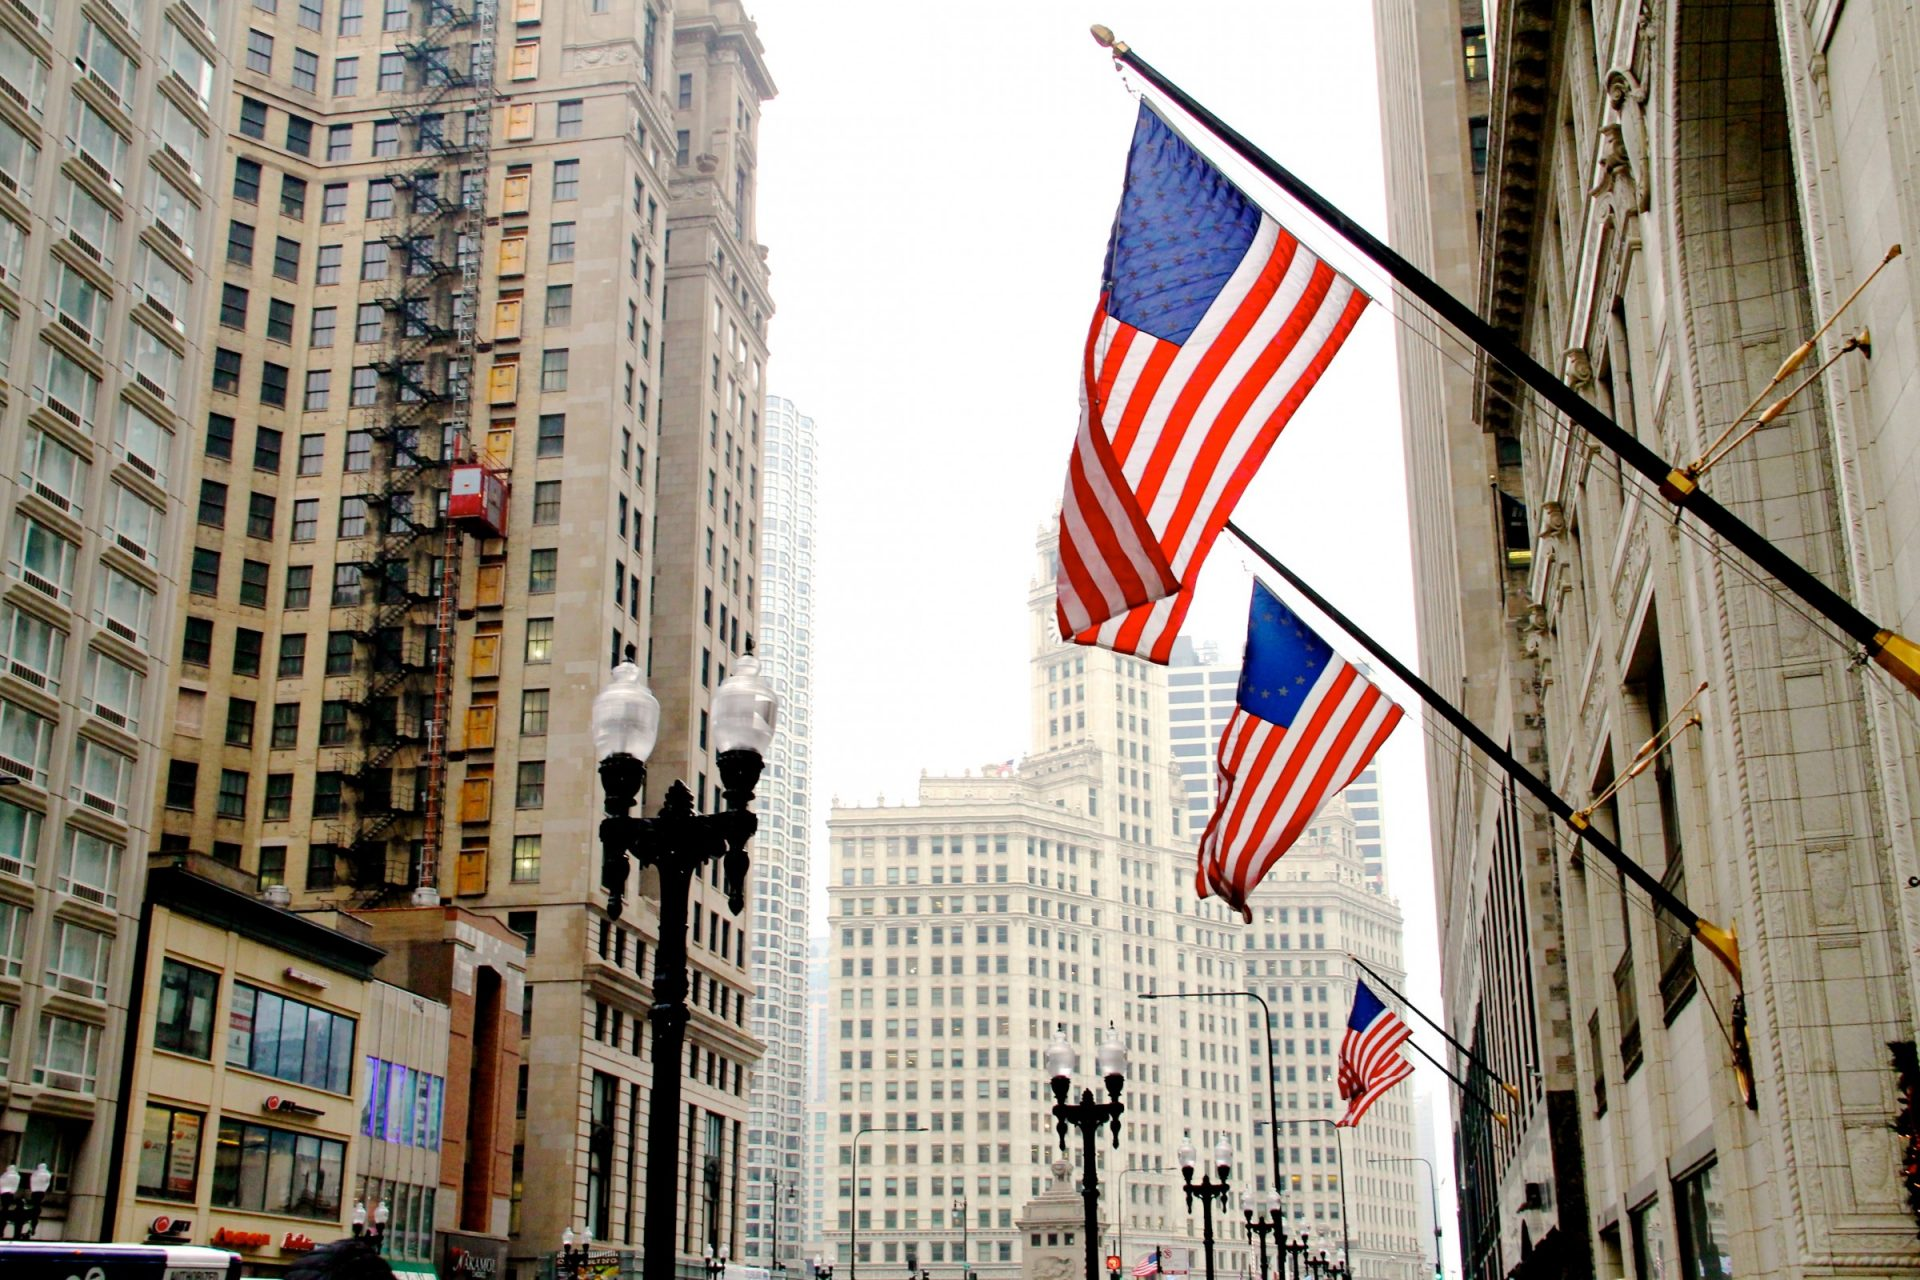 American Flags on Side of Building in City